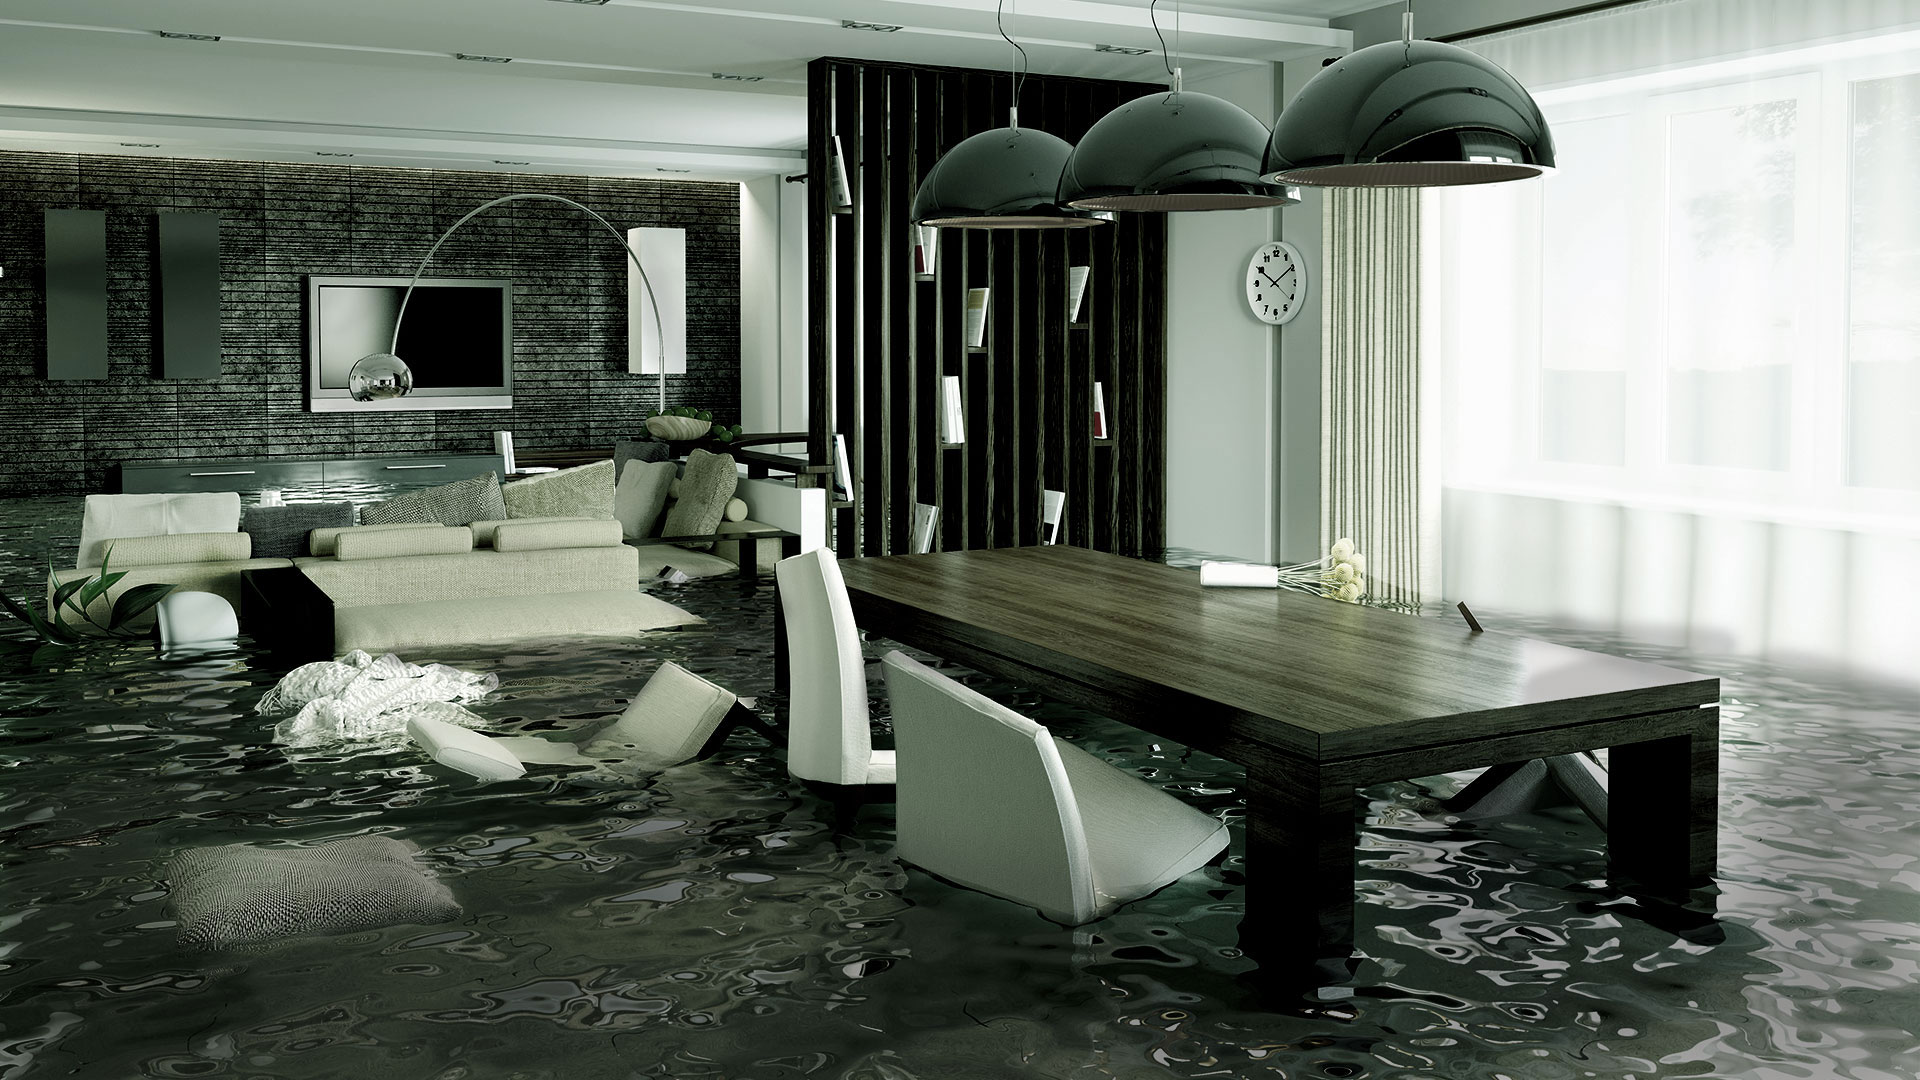 Blaine Water Damage Restoration